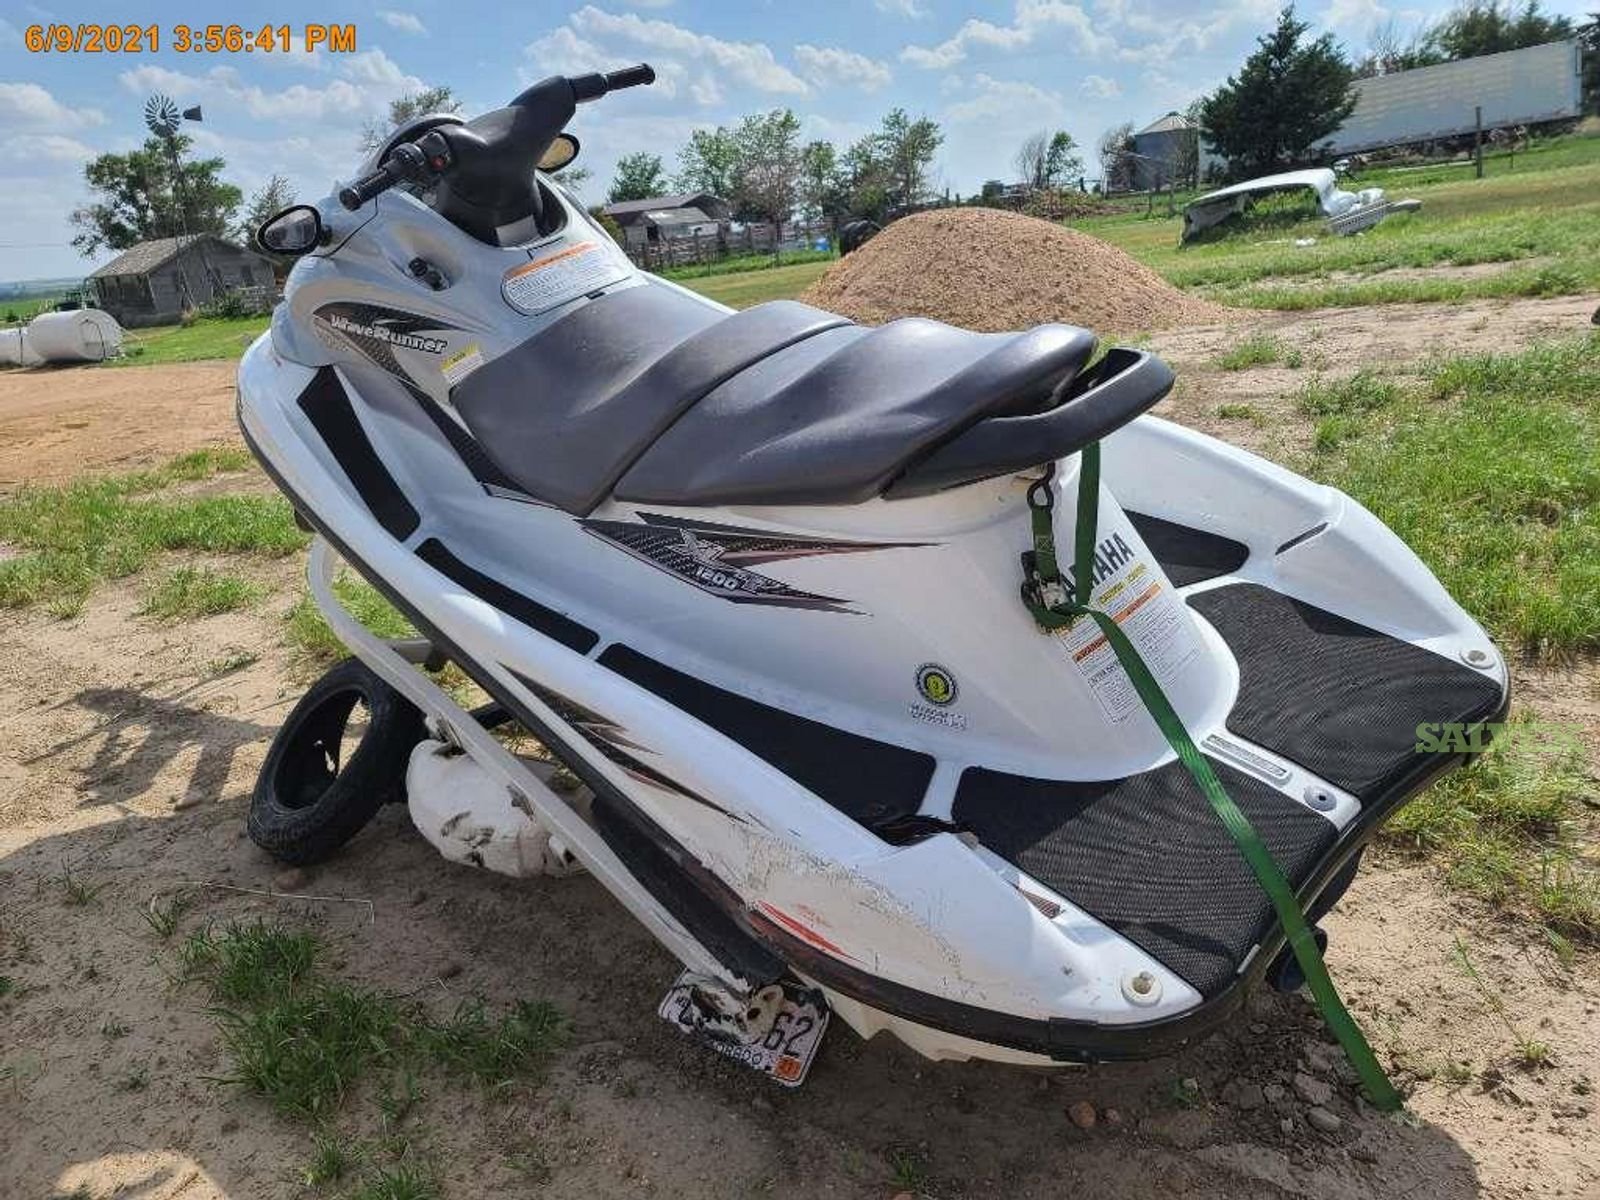 Yamaha XLT1200 2001  Waverunner and ShoreLand'r Certified and PWCL1000/L 13' Jet Skit Trailer 2003